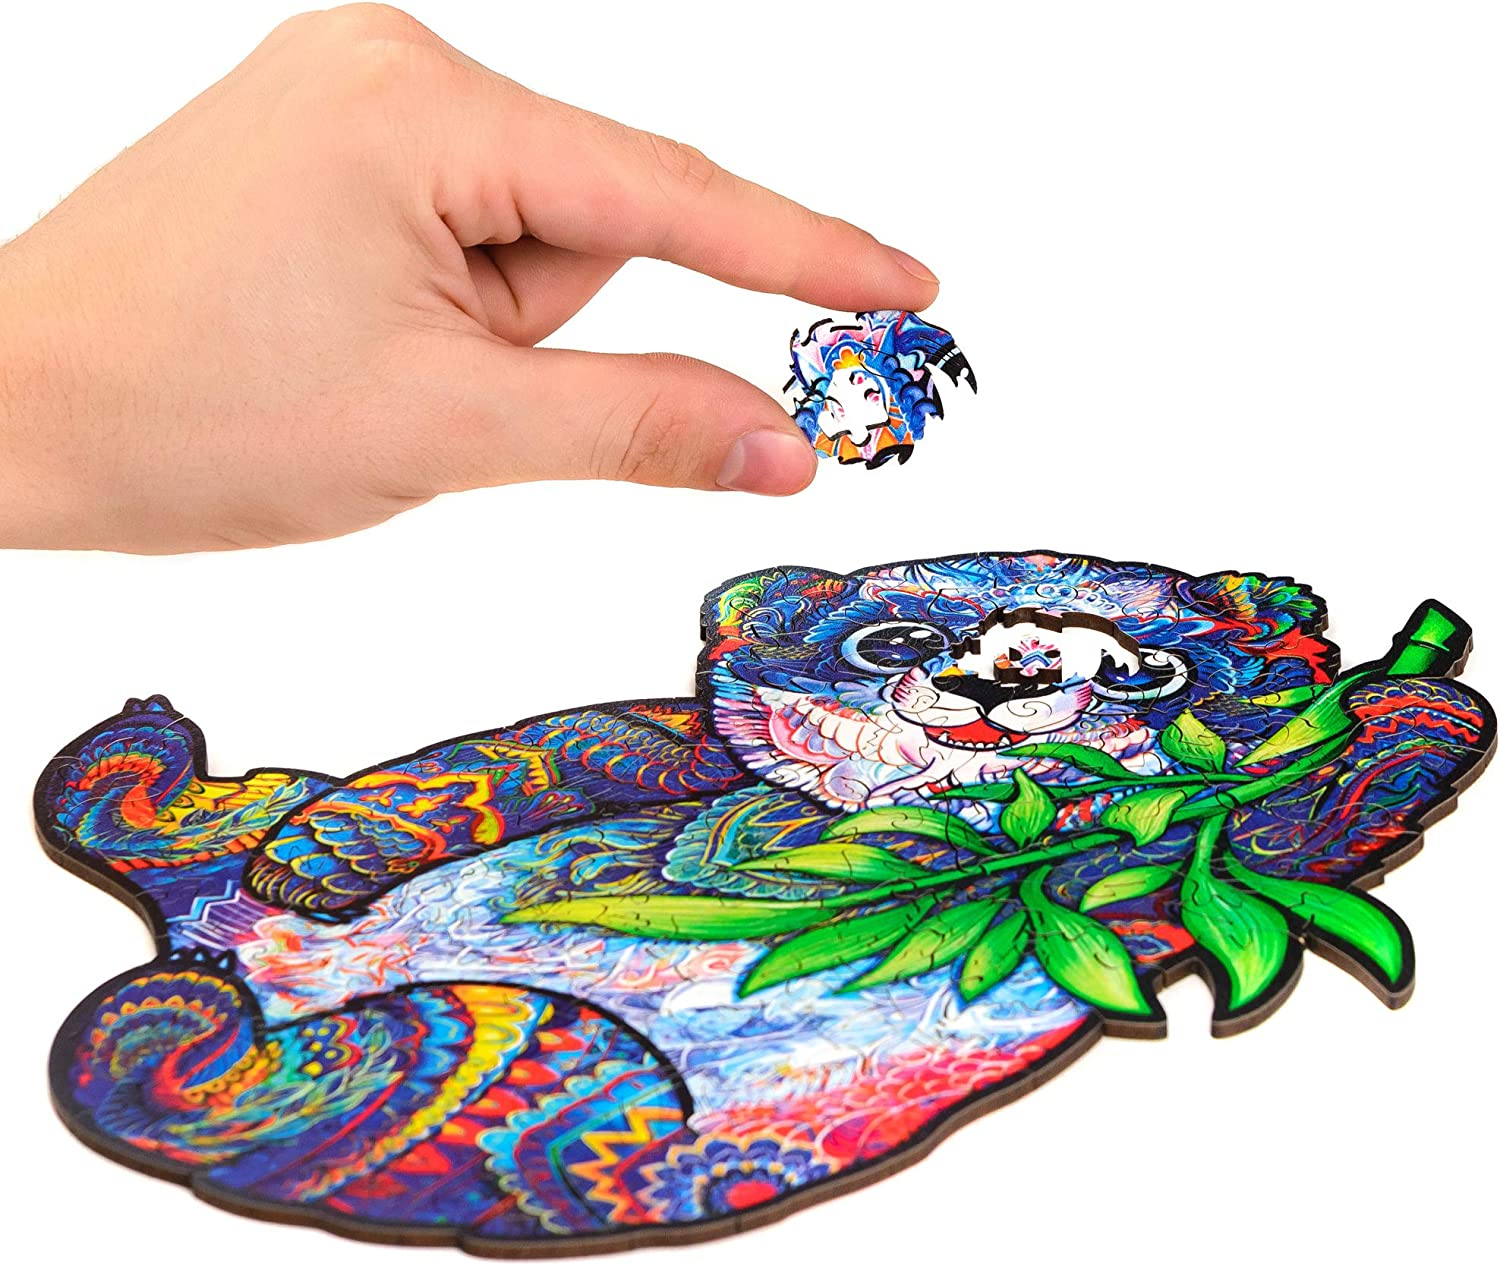 Best Gift for Adults and Kids 110 Pieces Unidragon Wooden Puzzle Jigsaw Unique Shape Jigsaw Pieces Serious Panda Small 9.4 x 7 inches